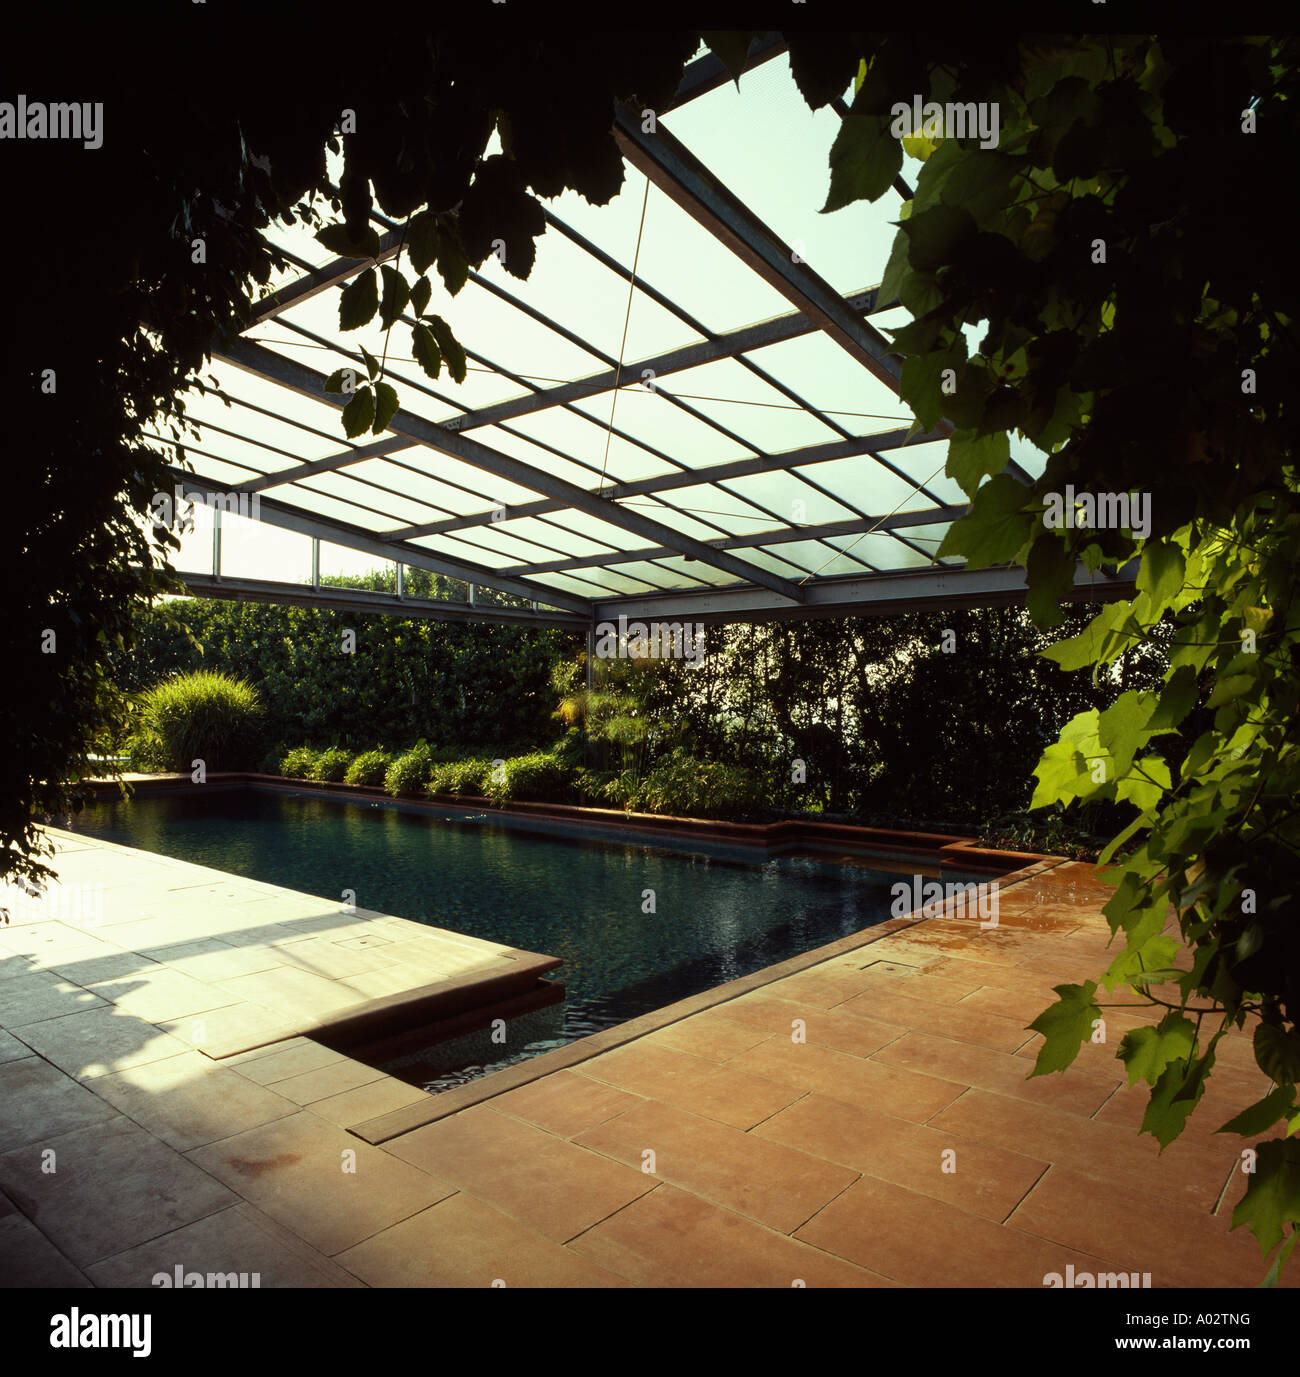 Swedish Cabin With Roof Top Garden And Retractable Outdoor: Indoor Pool With Retractable Roof